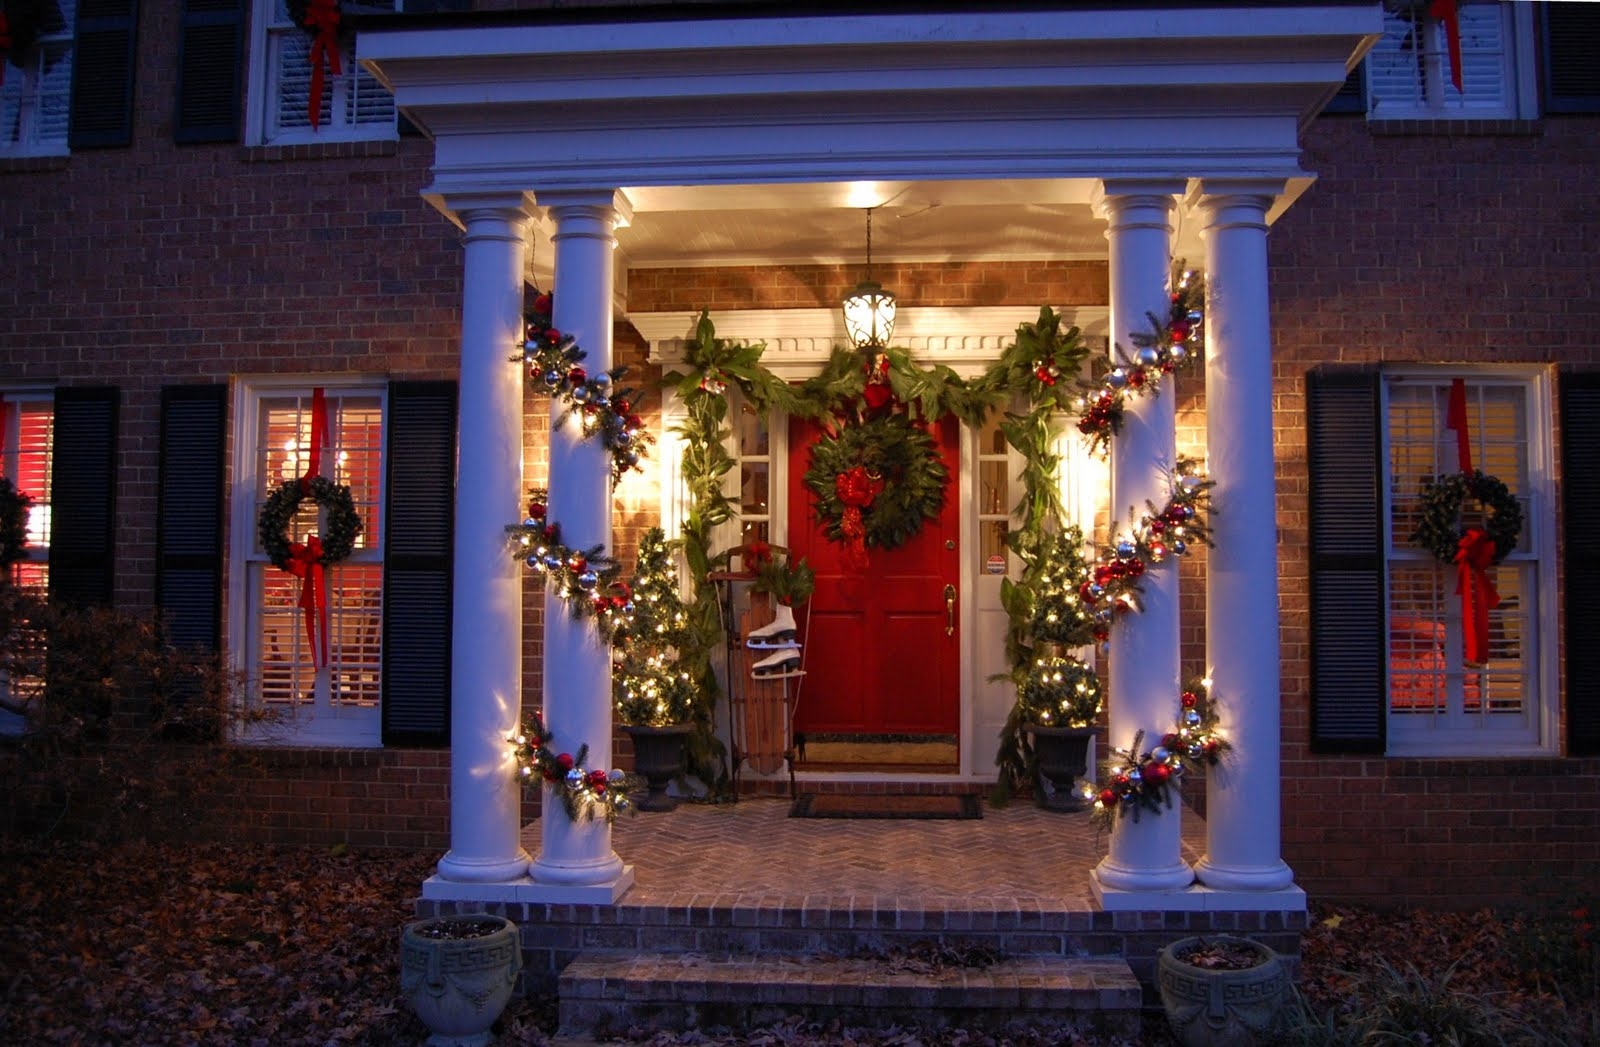 Front porch christmas decorations - Decorating For Christmas With Magnolia And Pine